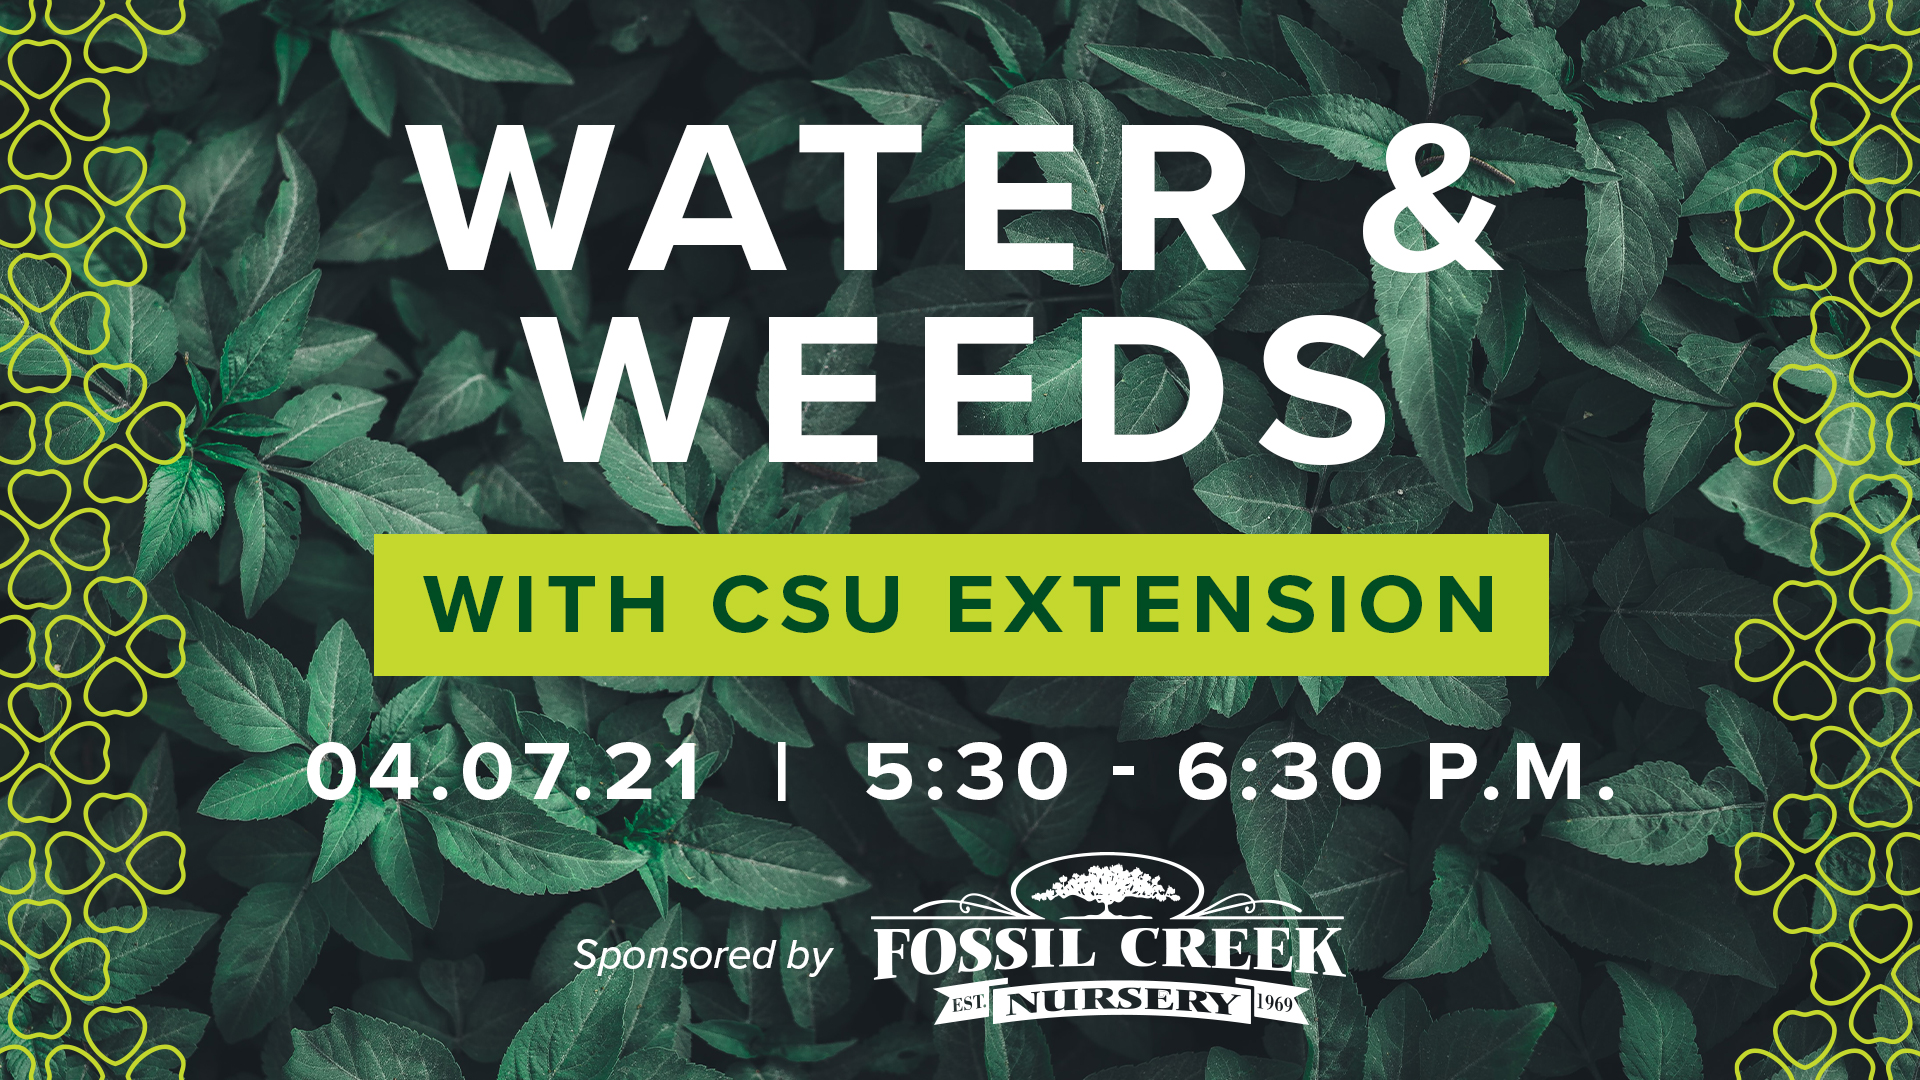 Image for Gardening Series with CSU Extension: Water and Weeds webinar